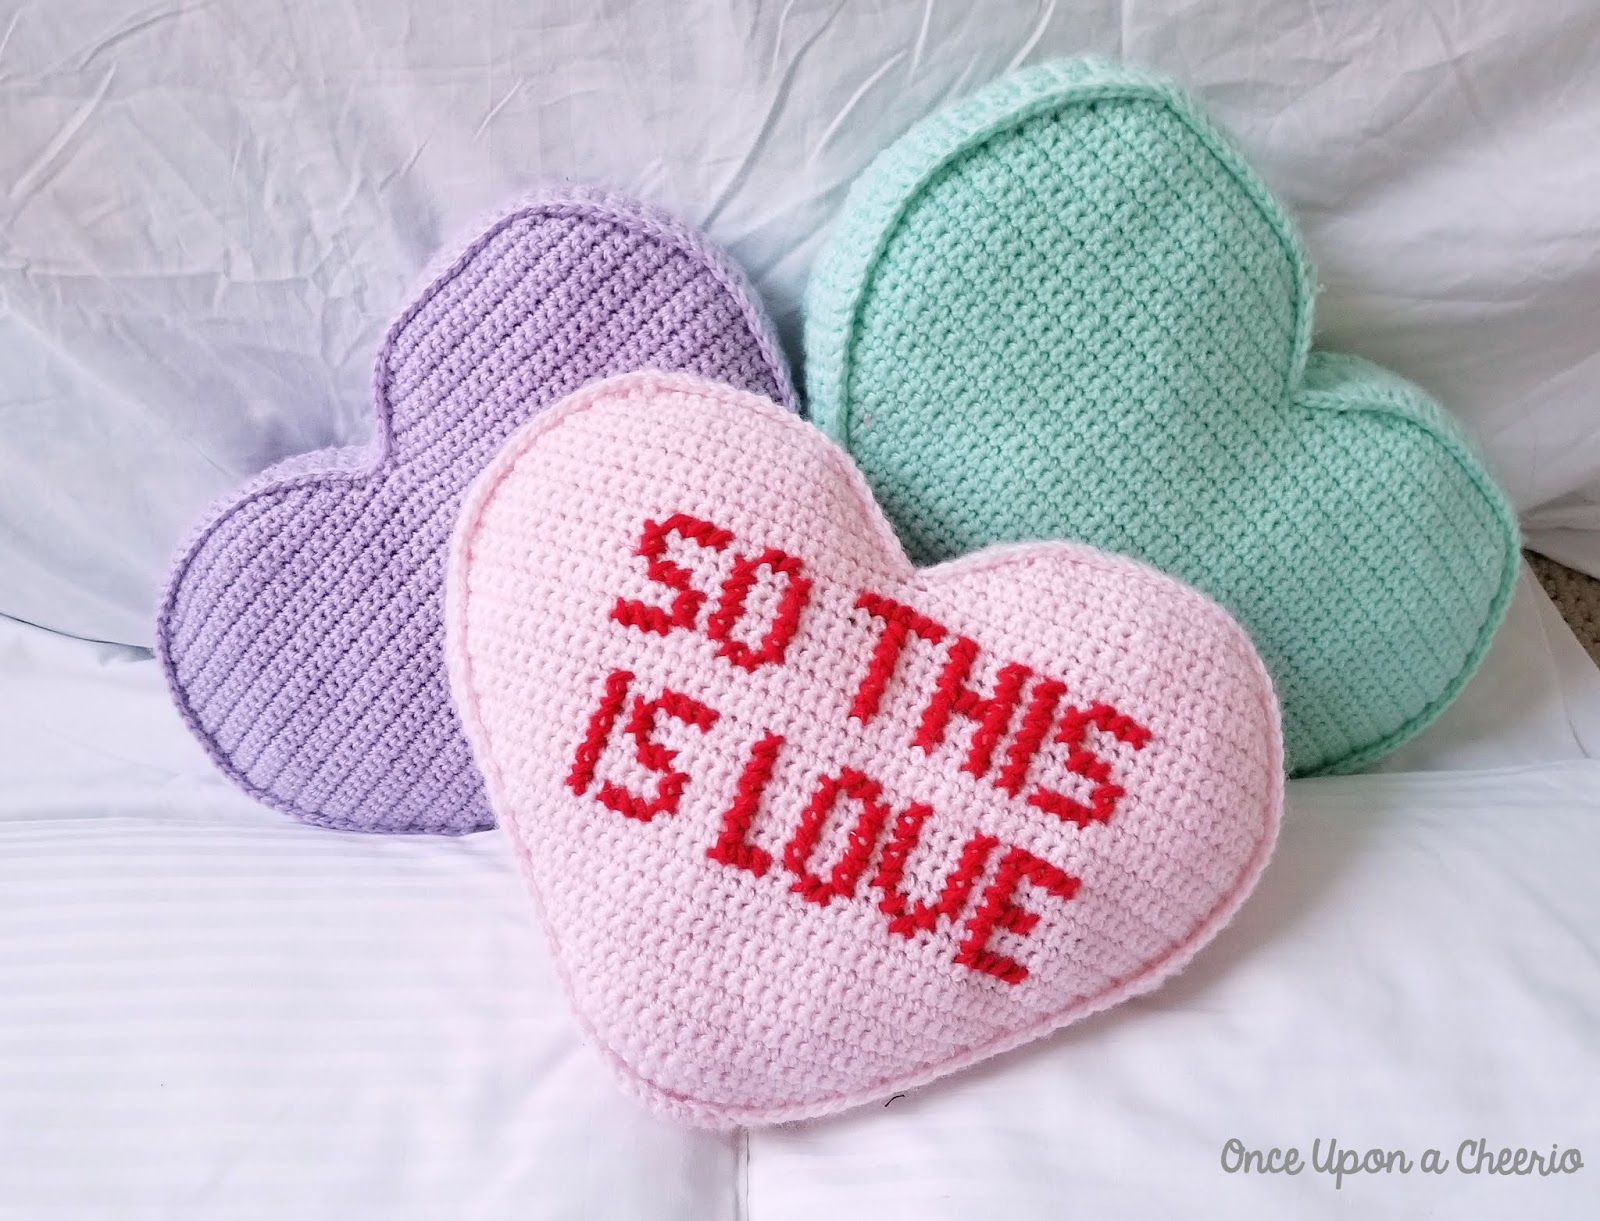 Cross Stitch Letters on Single Crochet Canvas Candy Heart Pillows